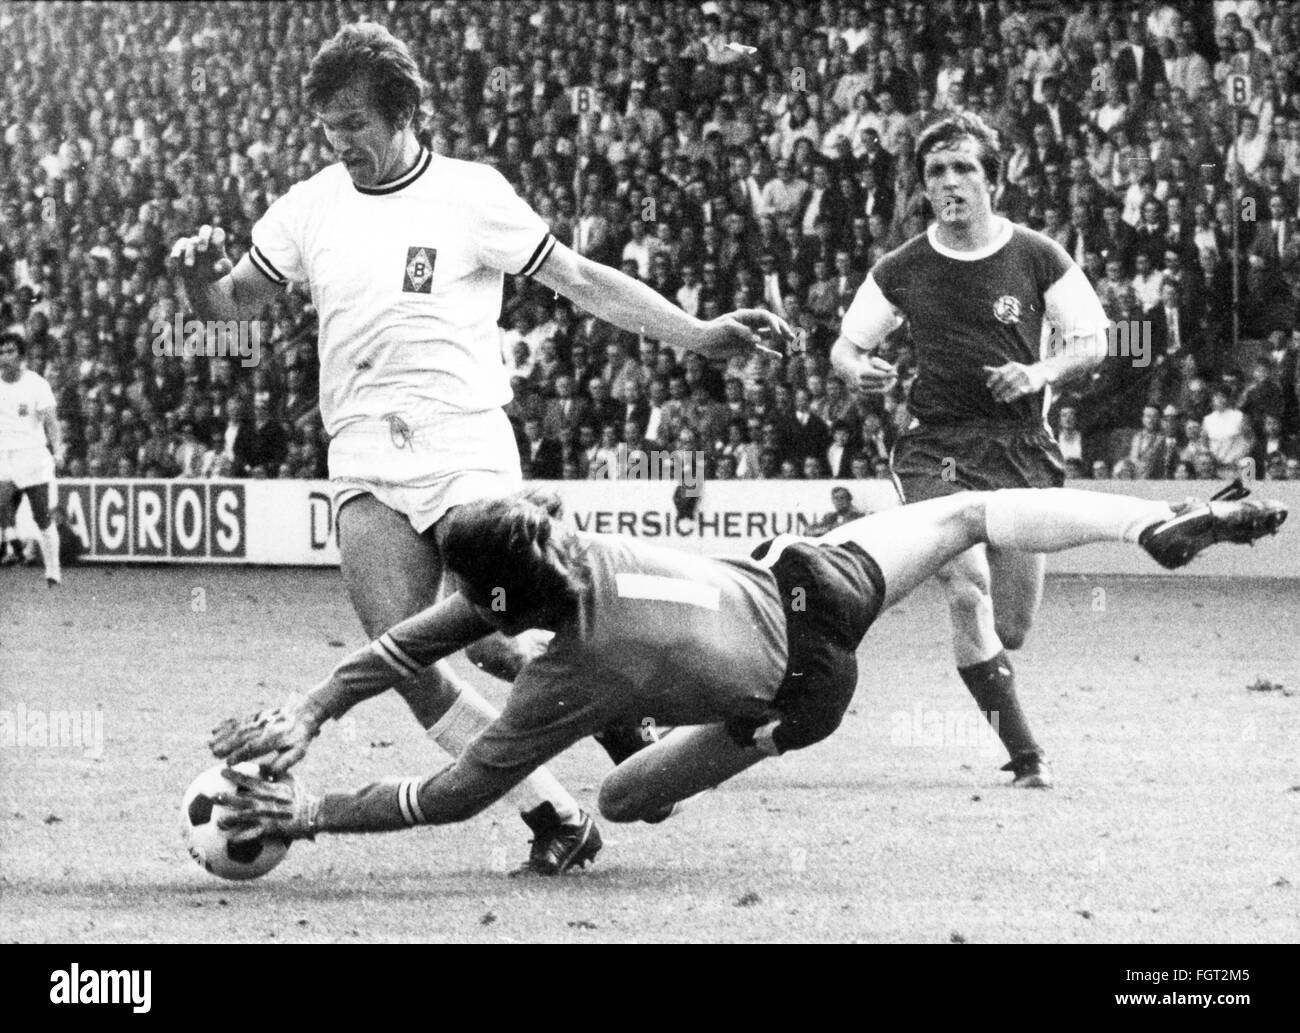 sports, football, games, Germany, national league, season 1970 / 1971, 33rd match day, game Borussia Moenchengladbach - Stock Image